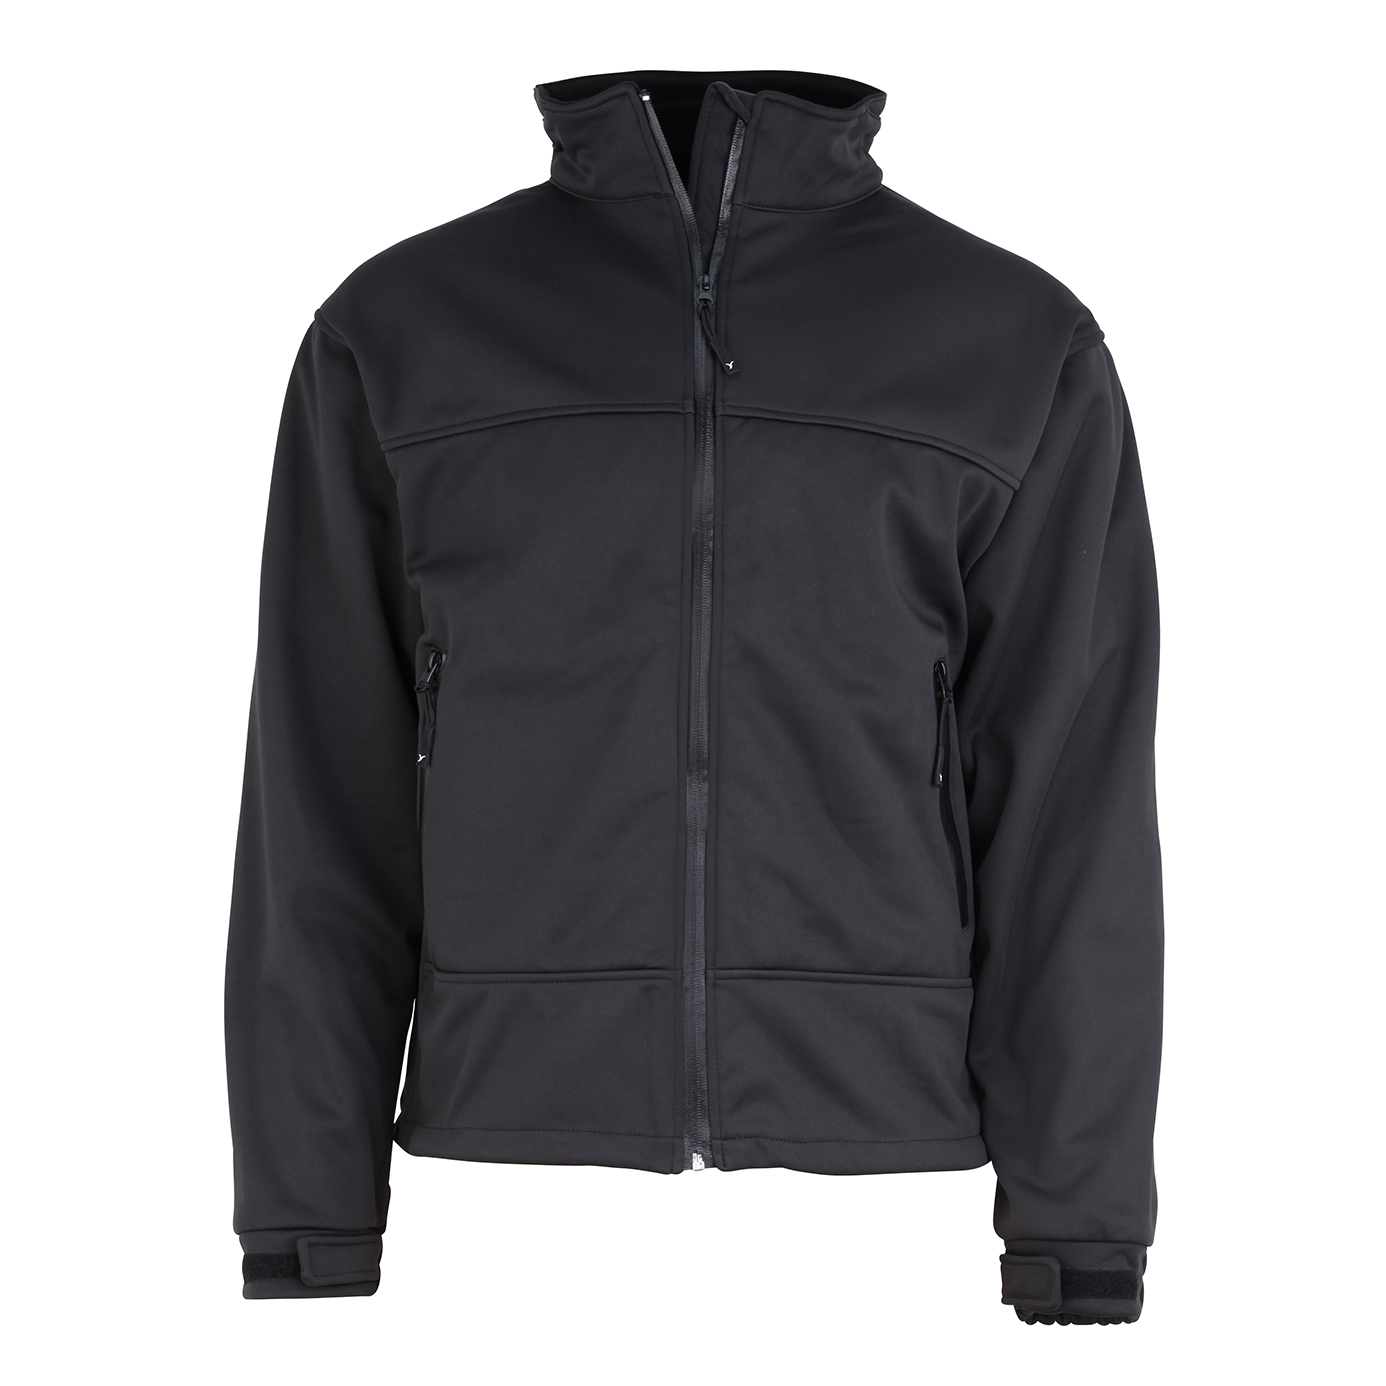 Cygnus Softshell Jacket - Black